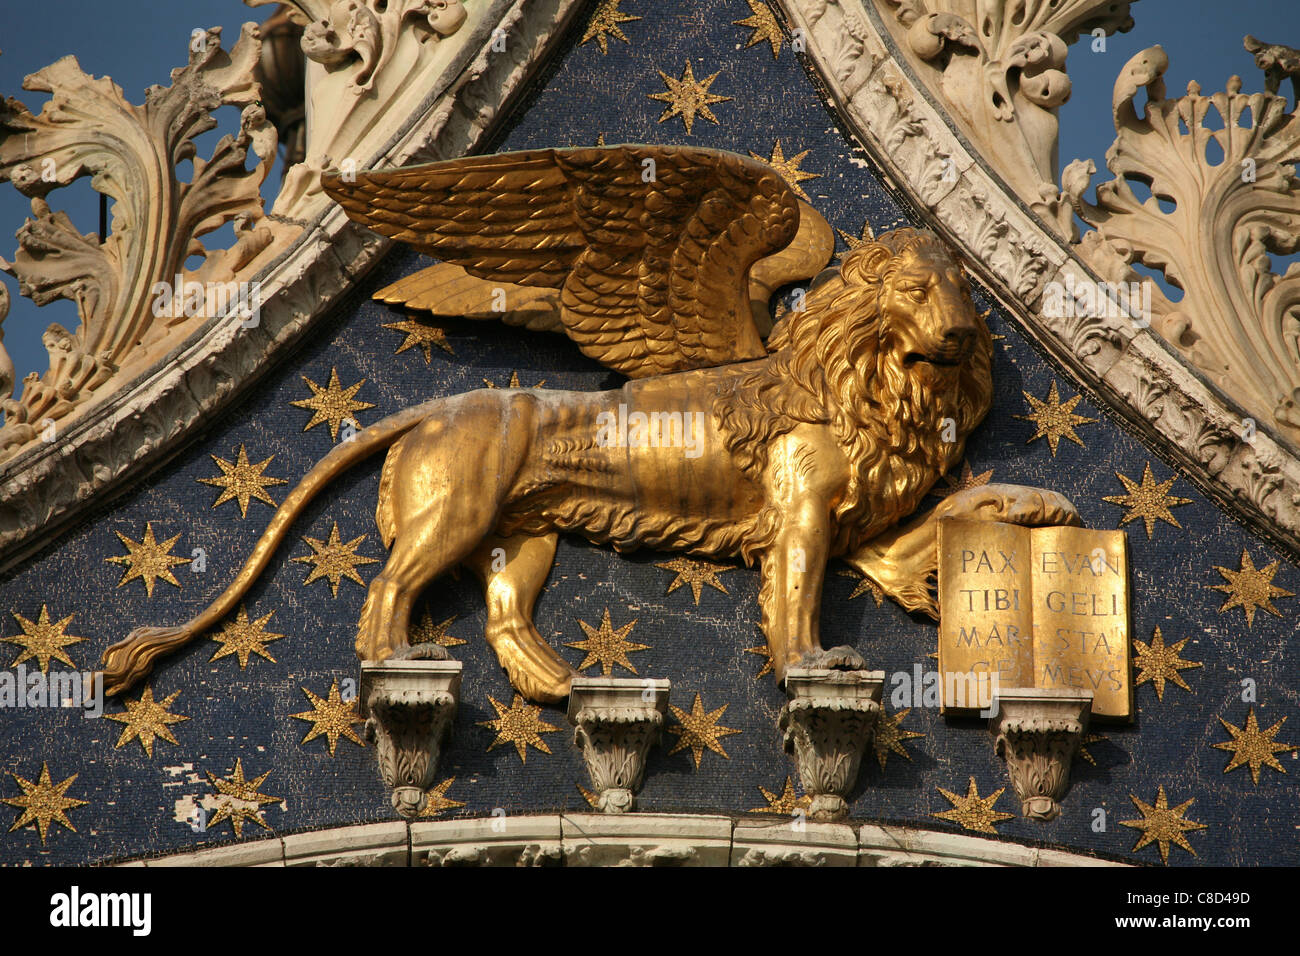 Lion of Saint Mark above the main gate of Saint Mark's Basilica on Piazza San Marco in Venice, Italy. Stock Photo